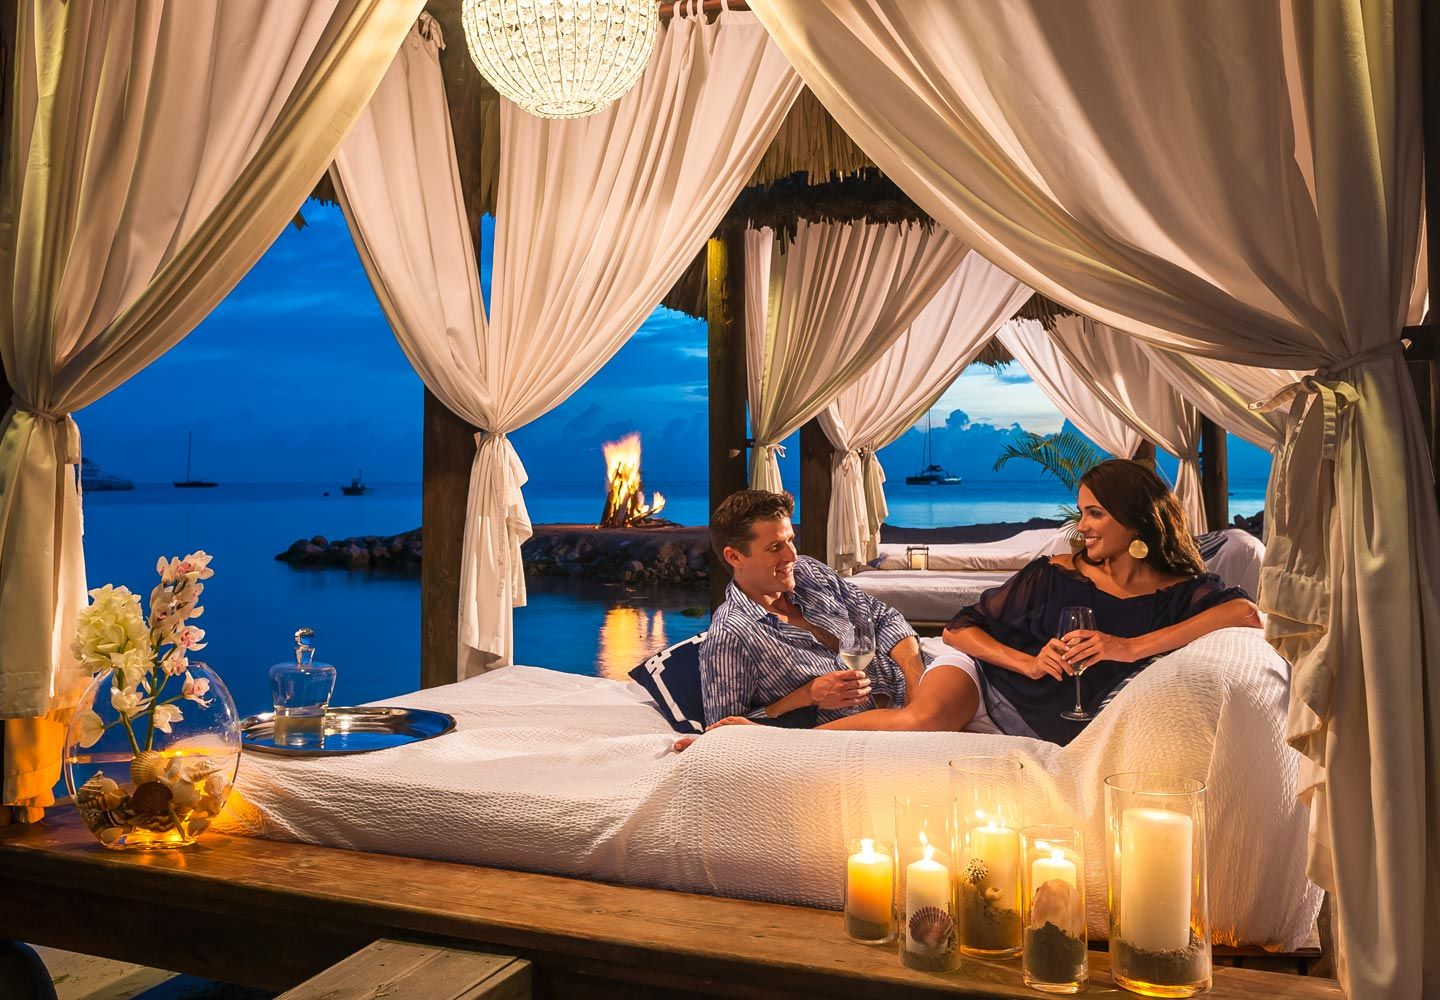 Sandals Negril - Balinese-style cabanas with beds are ...